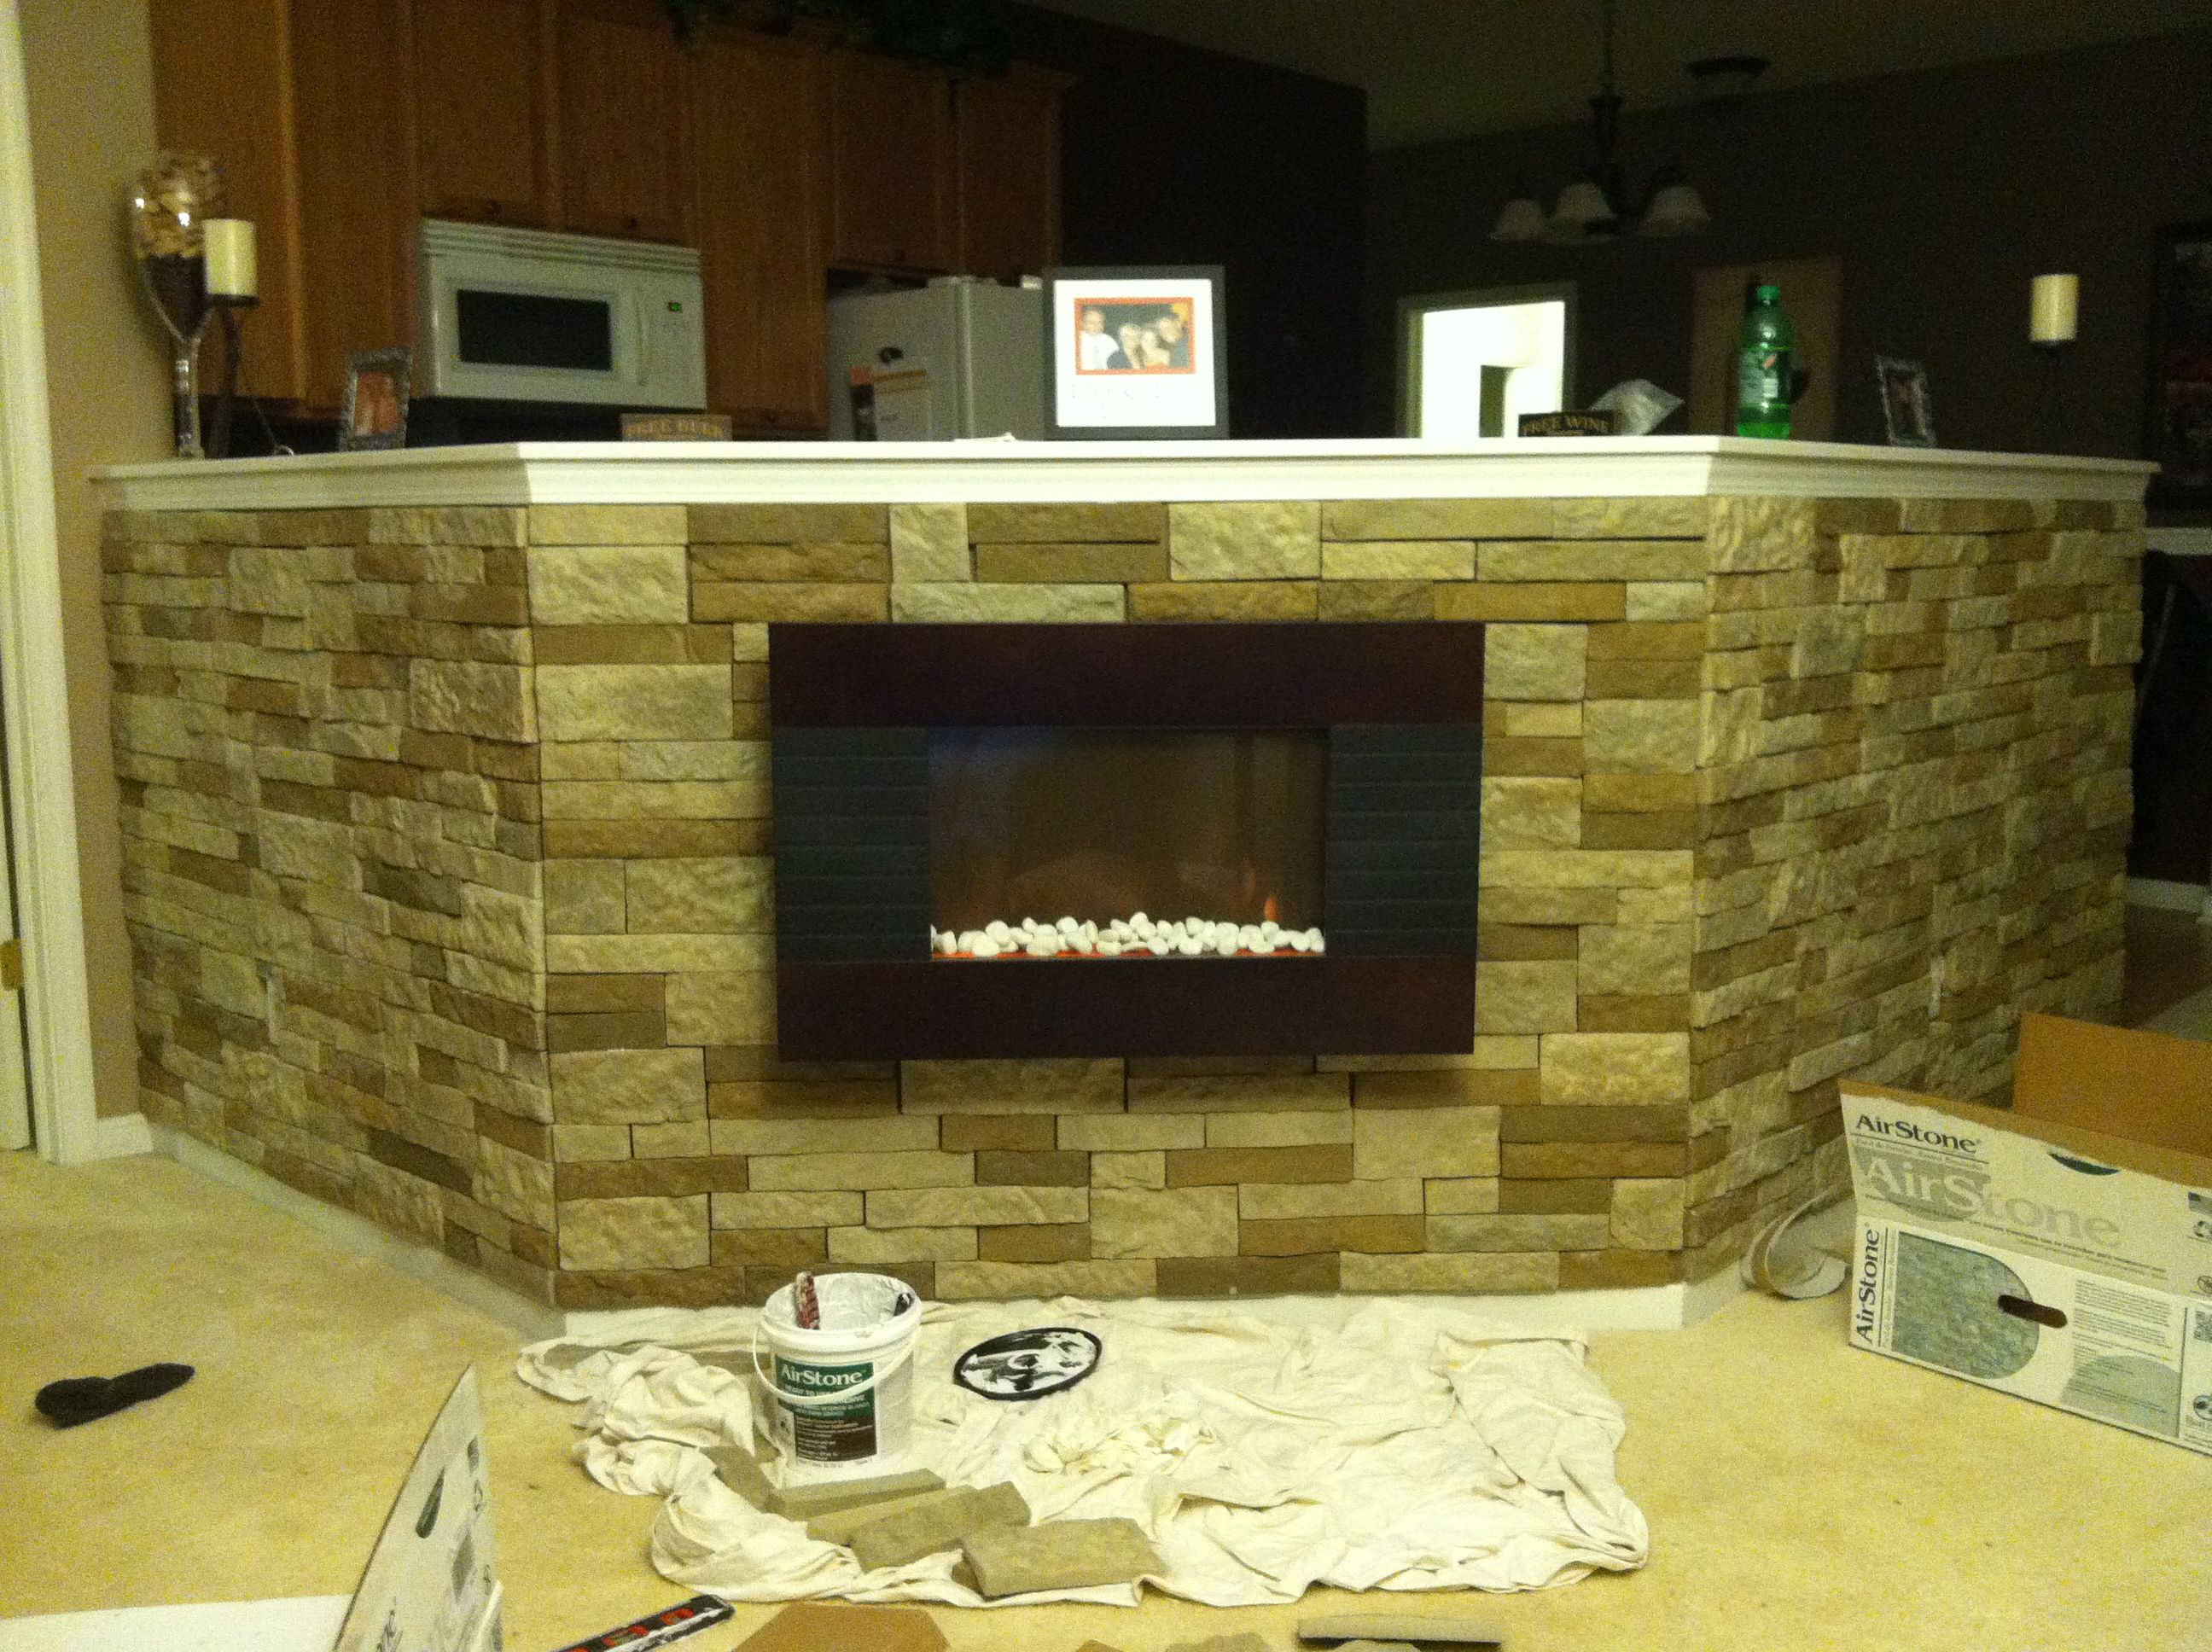 Proof tht pinterest ideas work!!!! DIY air stone project from lowes ...